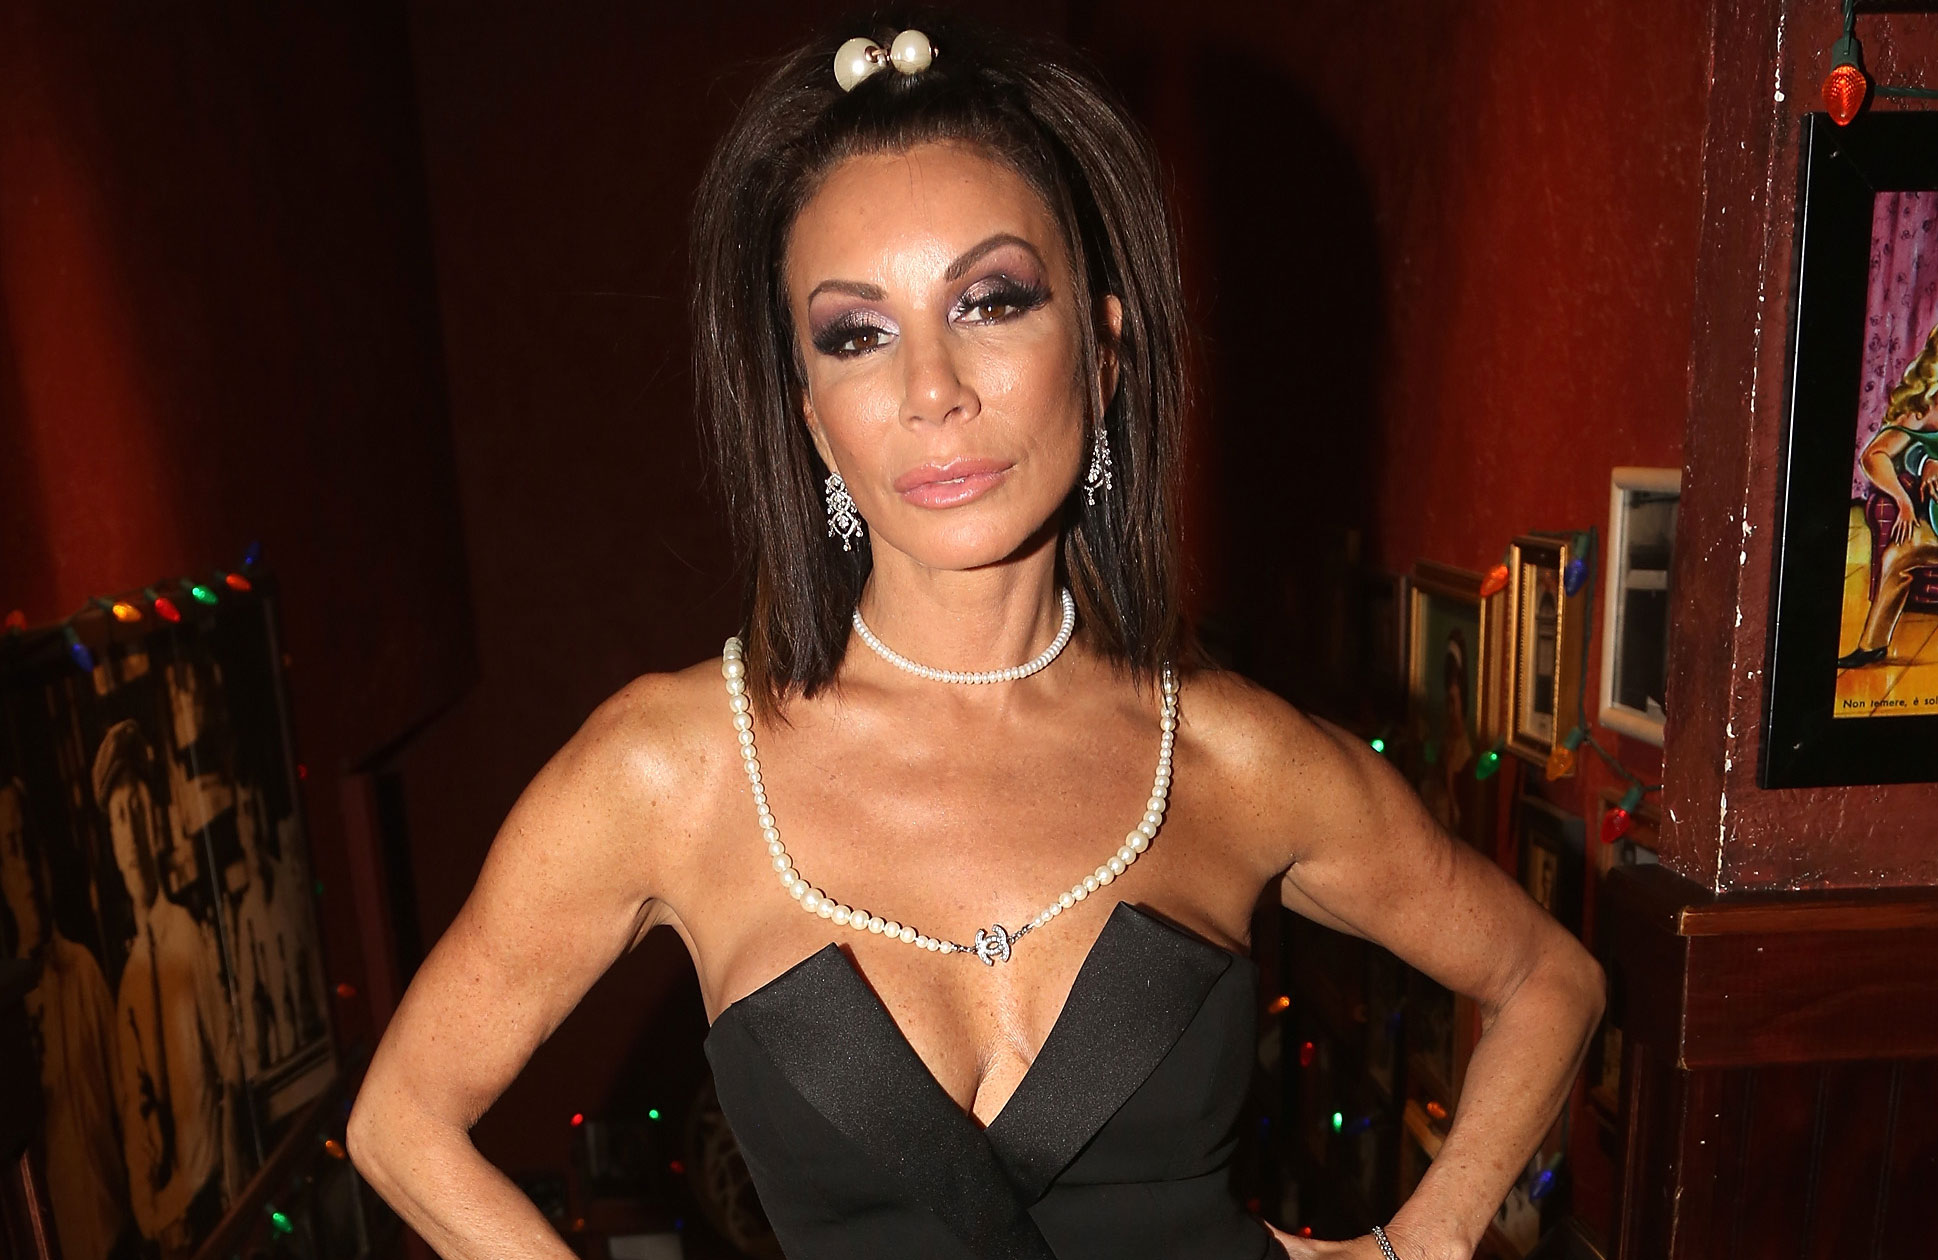 "Danielle Staub Opens Up About Depression Battle It's 'Not a Joking Matter visits Buca di Beppo Times Square - Bravo's ""The Real Housewives of New Jersey's"" Danielle Staub poses as she visits Buca di Beppo Times Square on November 30, 2018 in New York City."